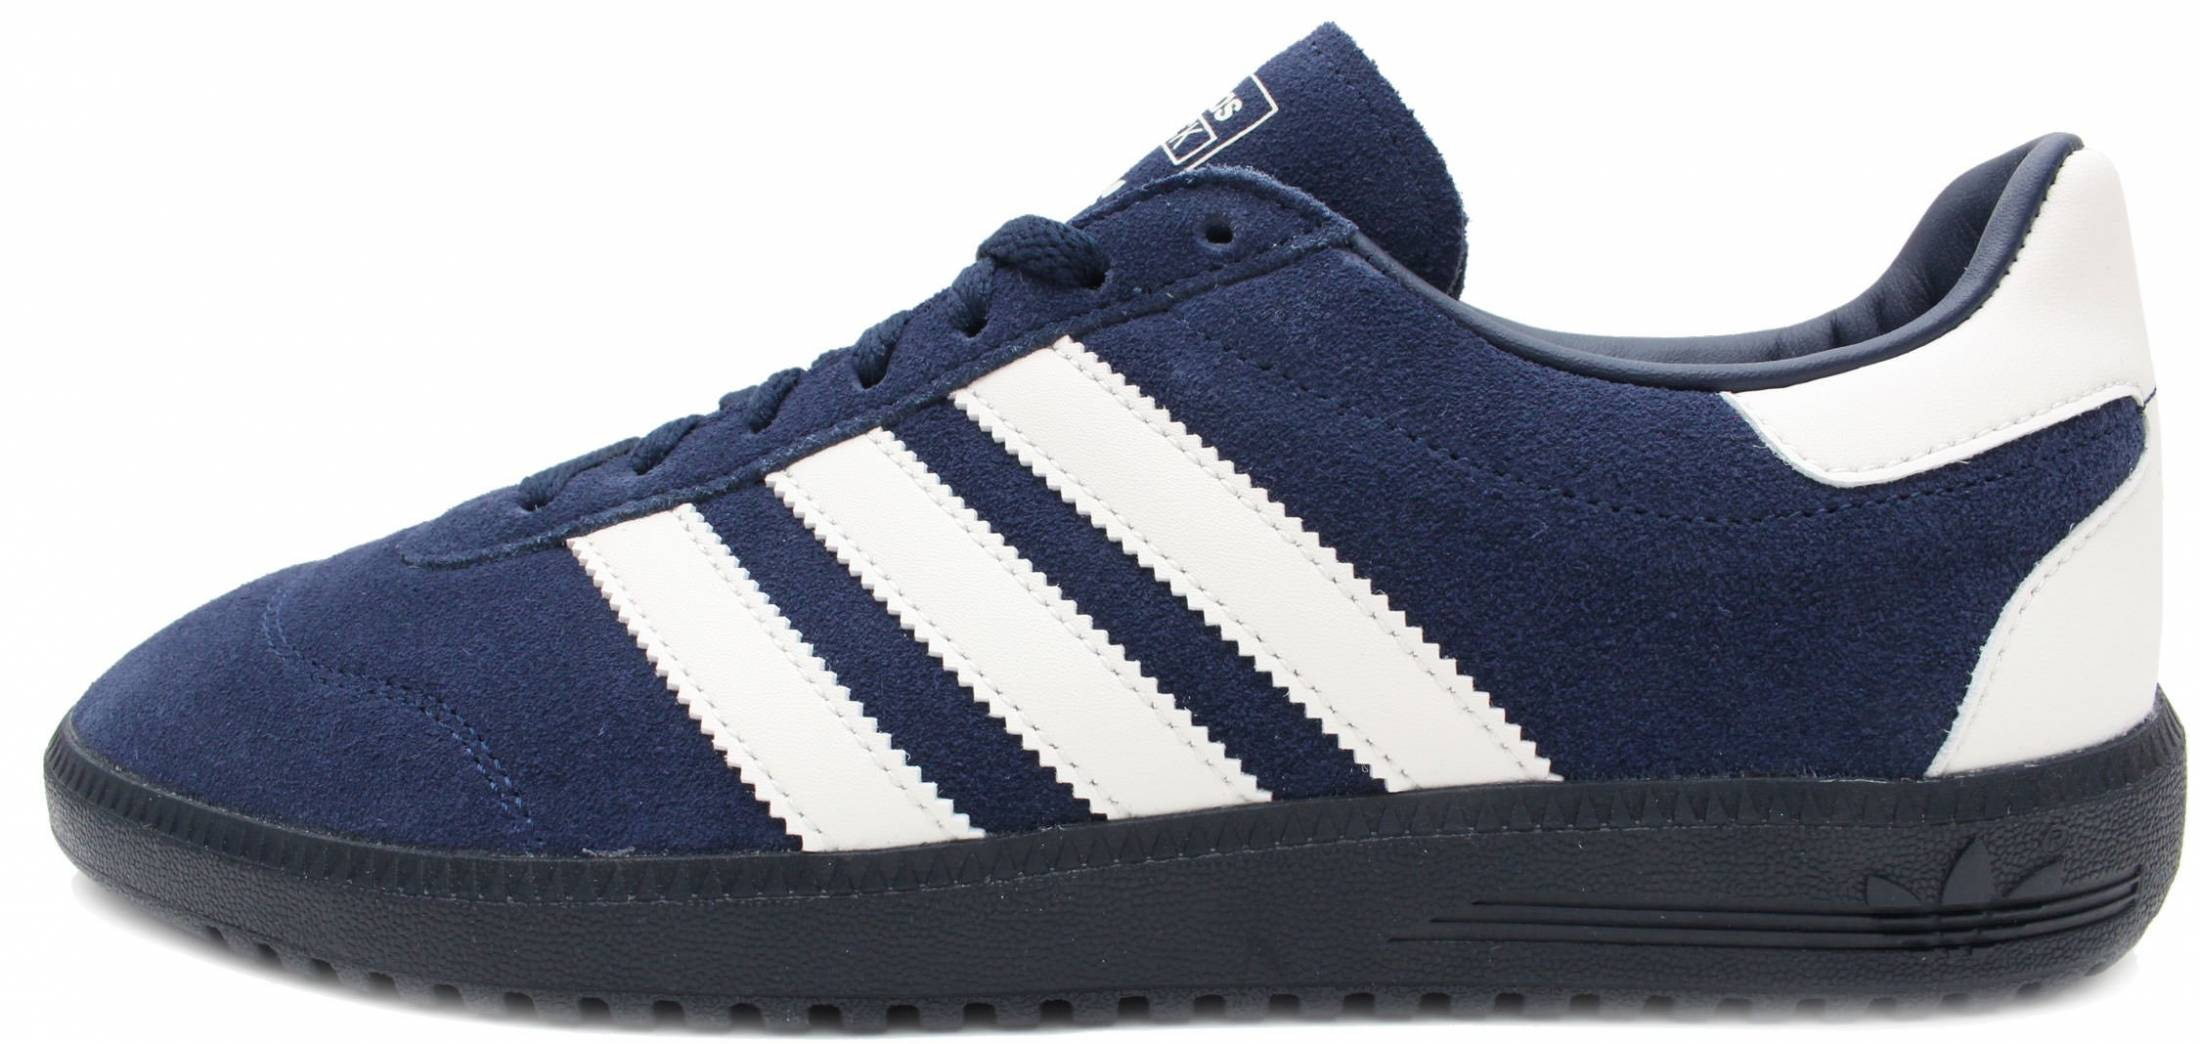 Only £99 + Review of Adidas Intack SPZL